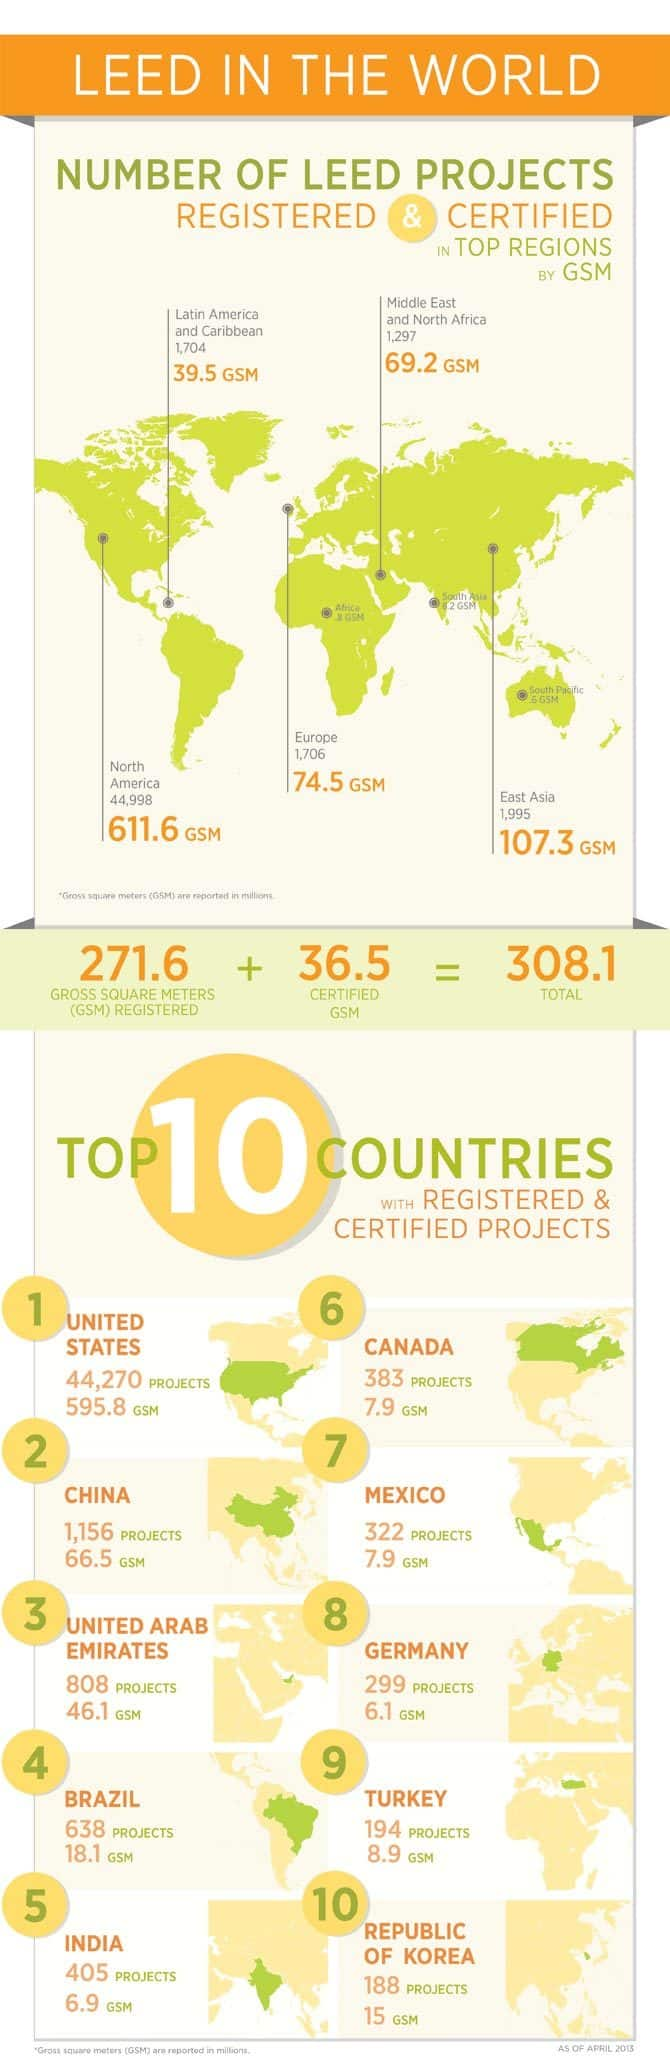 Registered Leed Projects In The World Infographic